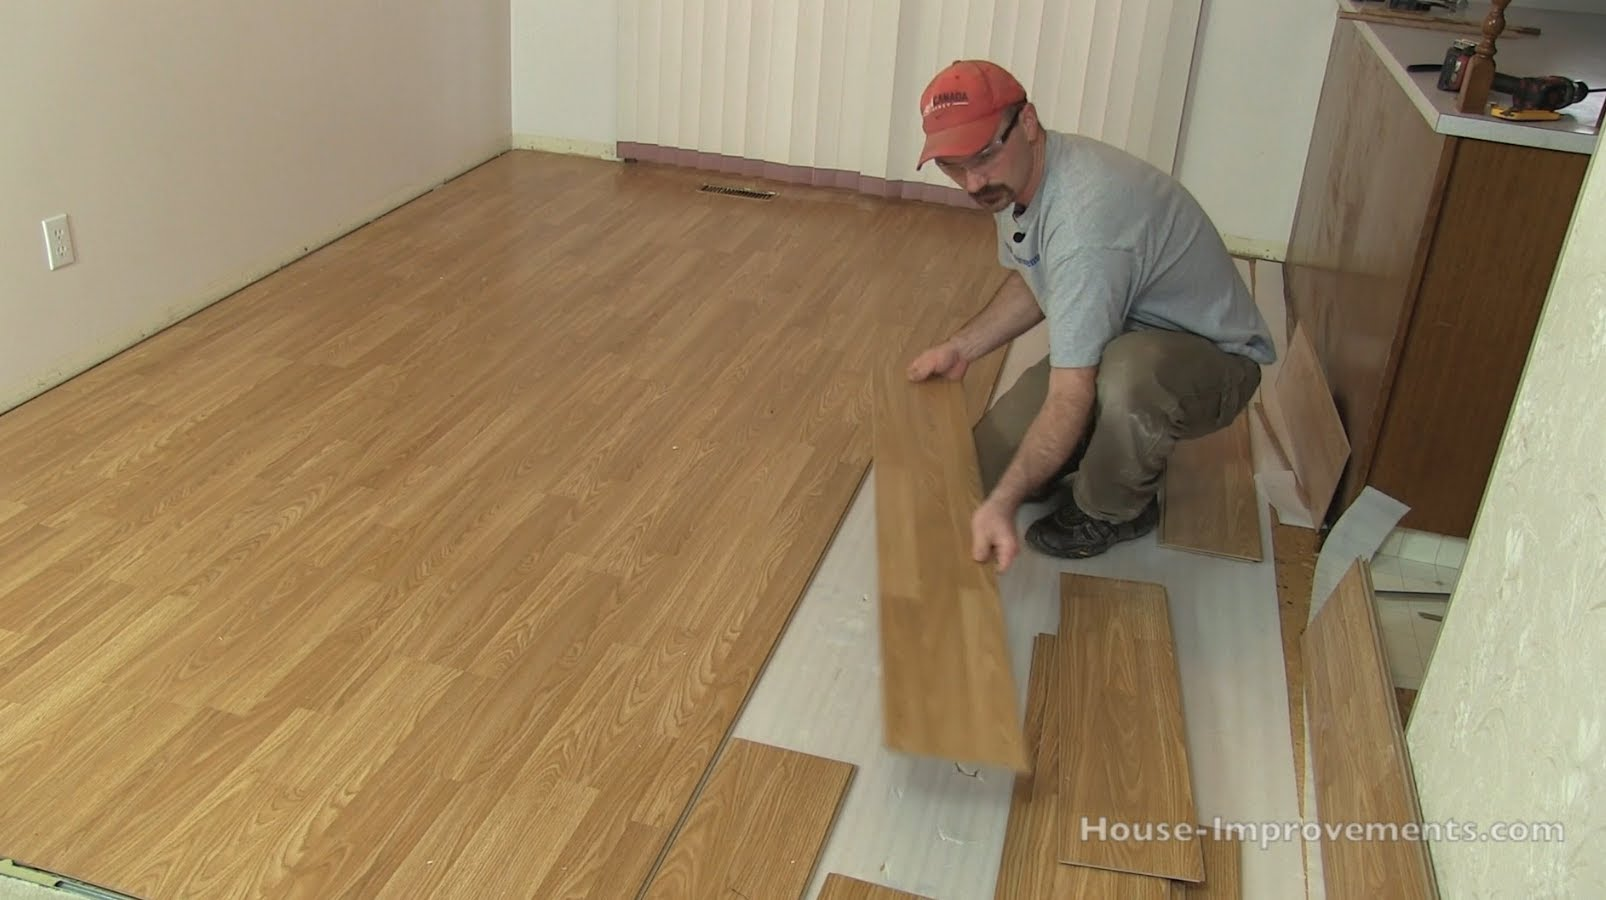 How to remove laminate flooring june 2018 toolversed for Laminate flooring contractors